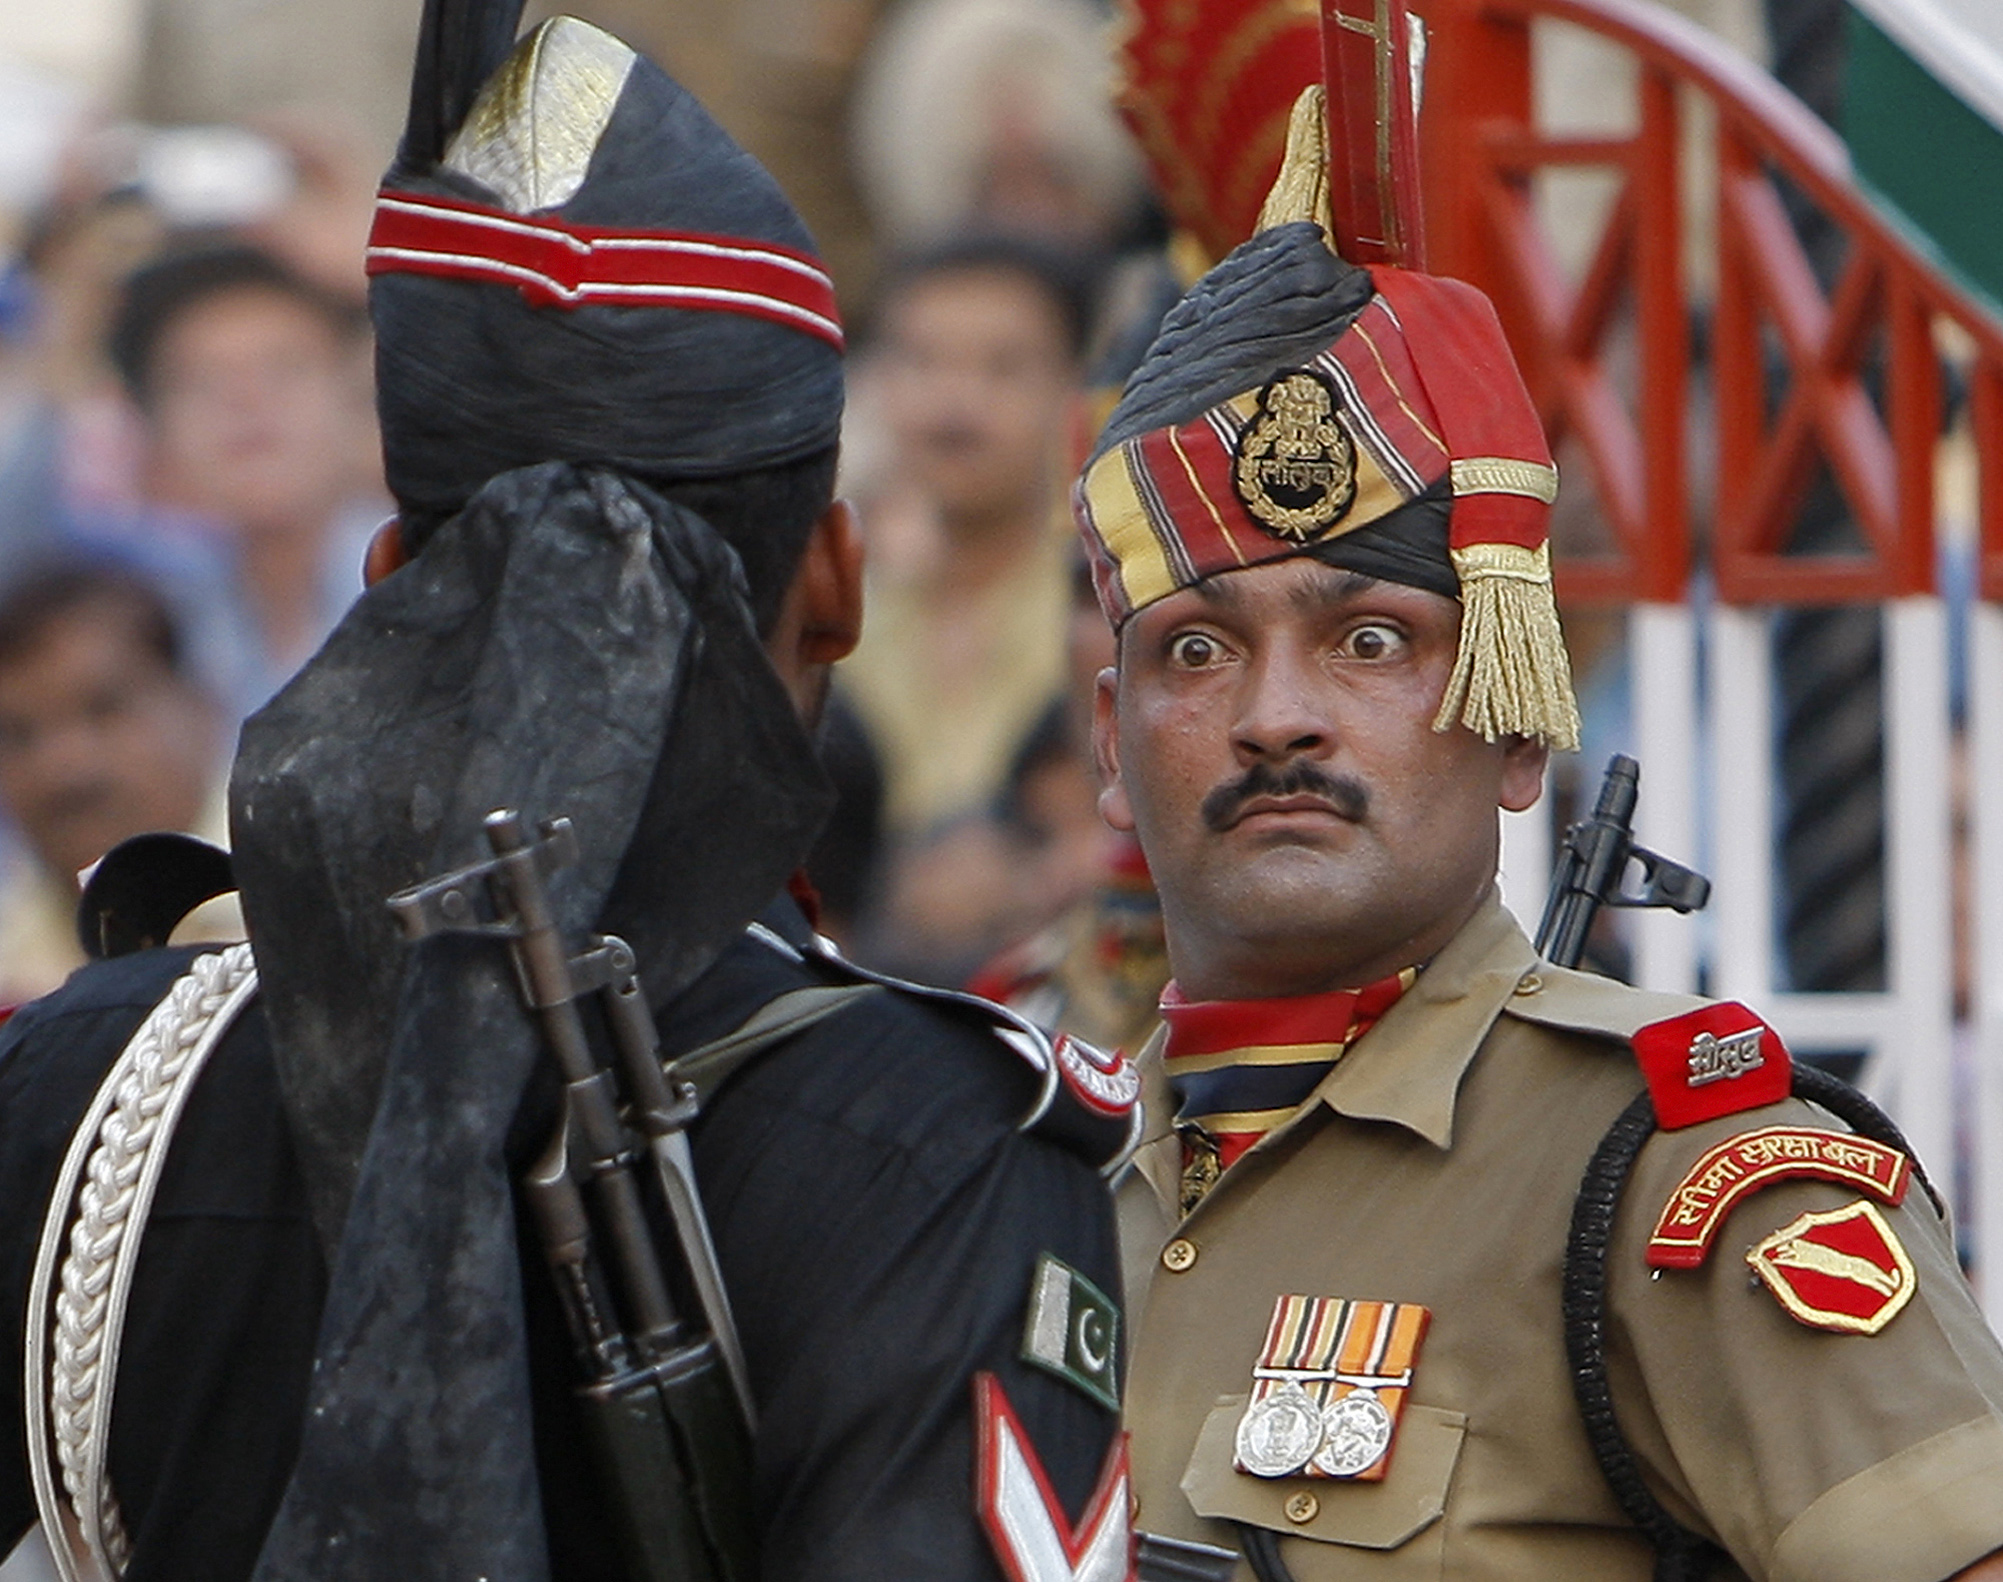 Indian Border Security Force soldier, right, and a Pakistani Rangers soldier face one another at a daily closing ceremony at the Wagah border post near Lahore - AP